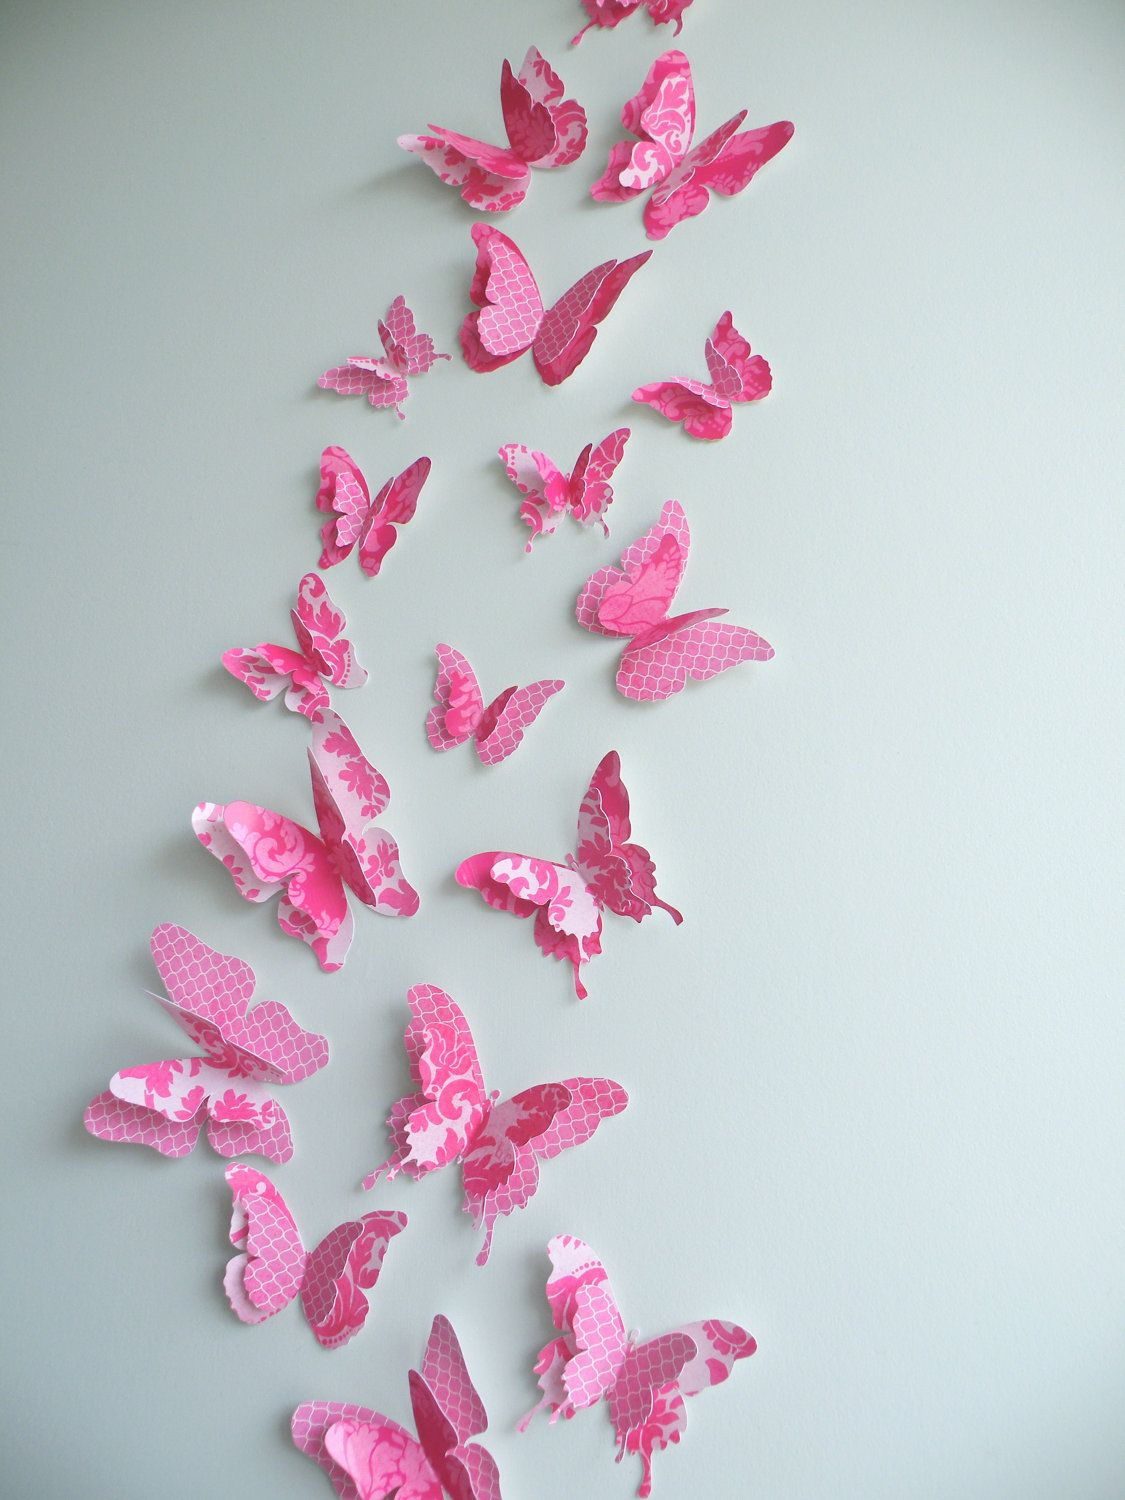 3D Butterfly wall art to decorate Nursery, Children's Room ...